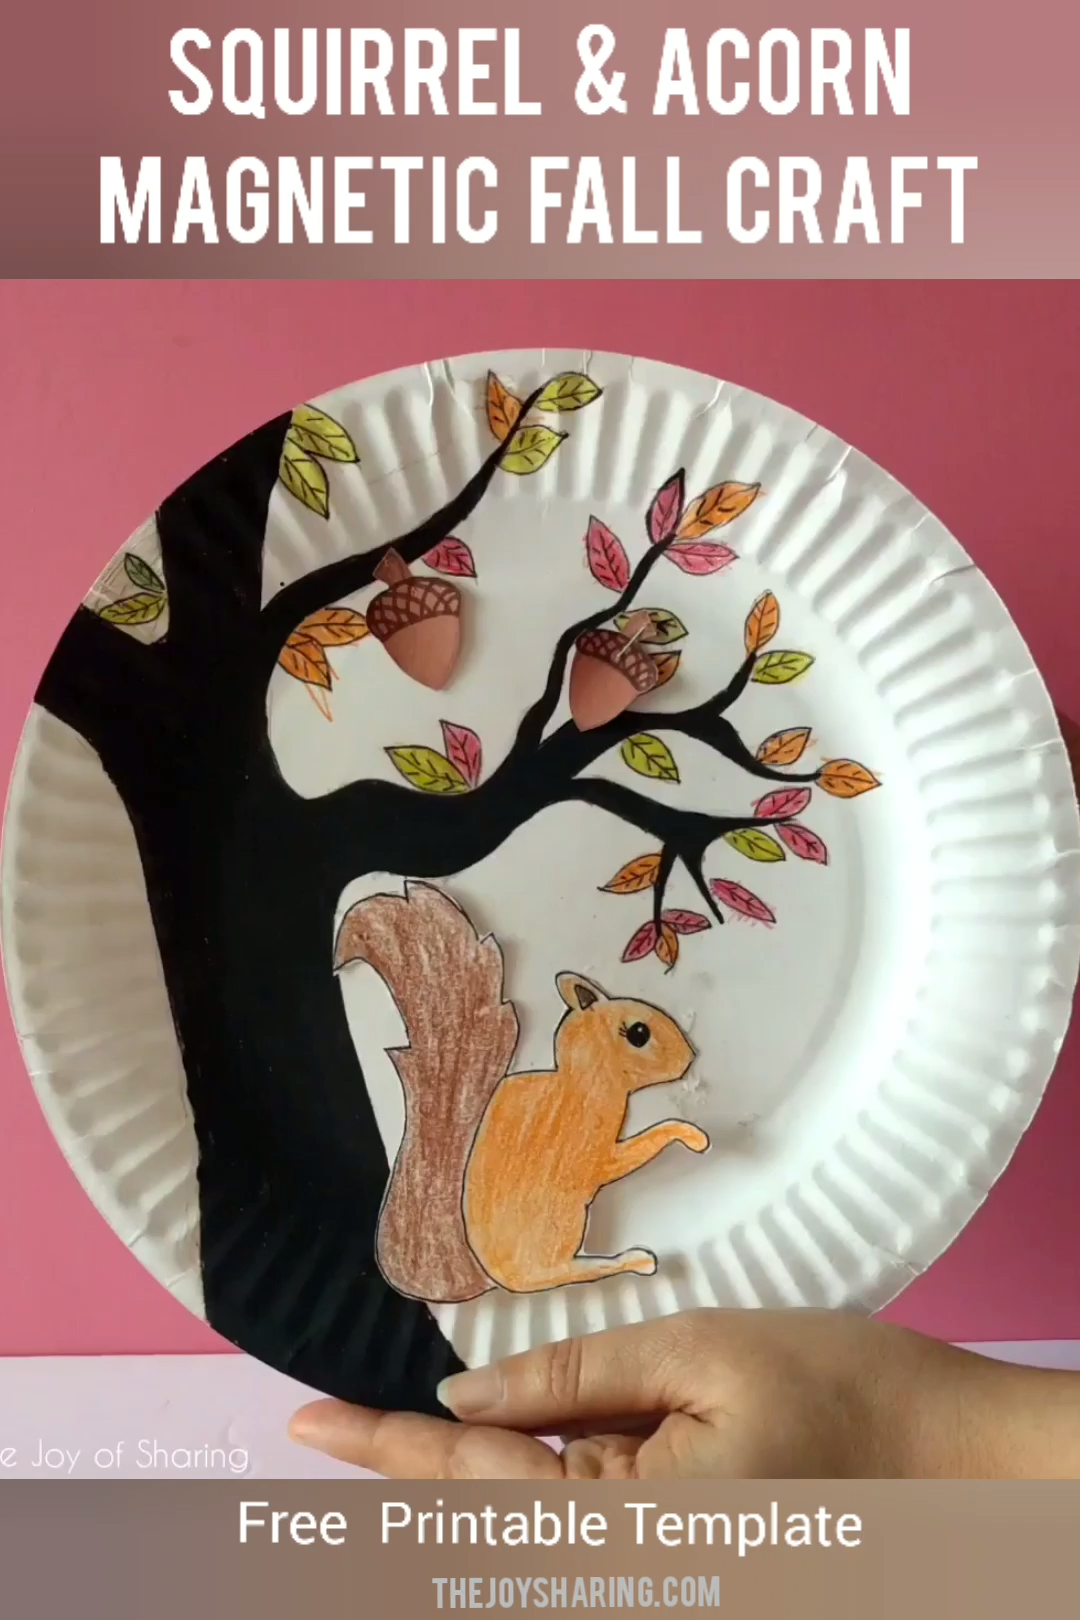 Magnetic Acorn & Squirrel Fall Craft #fallseason